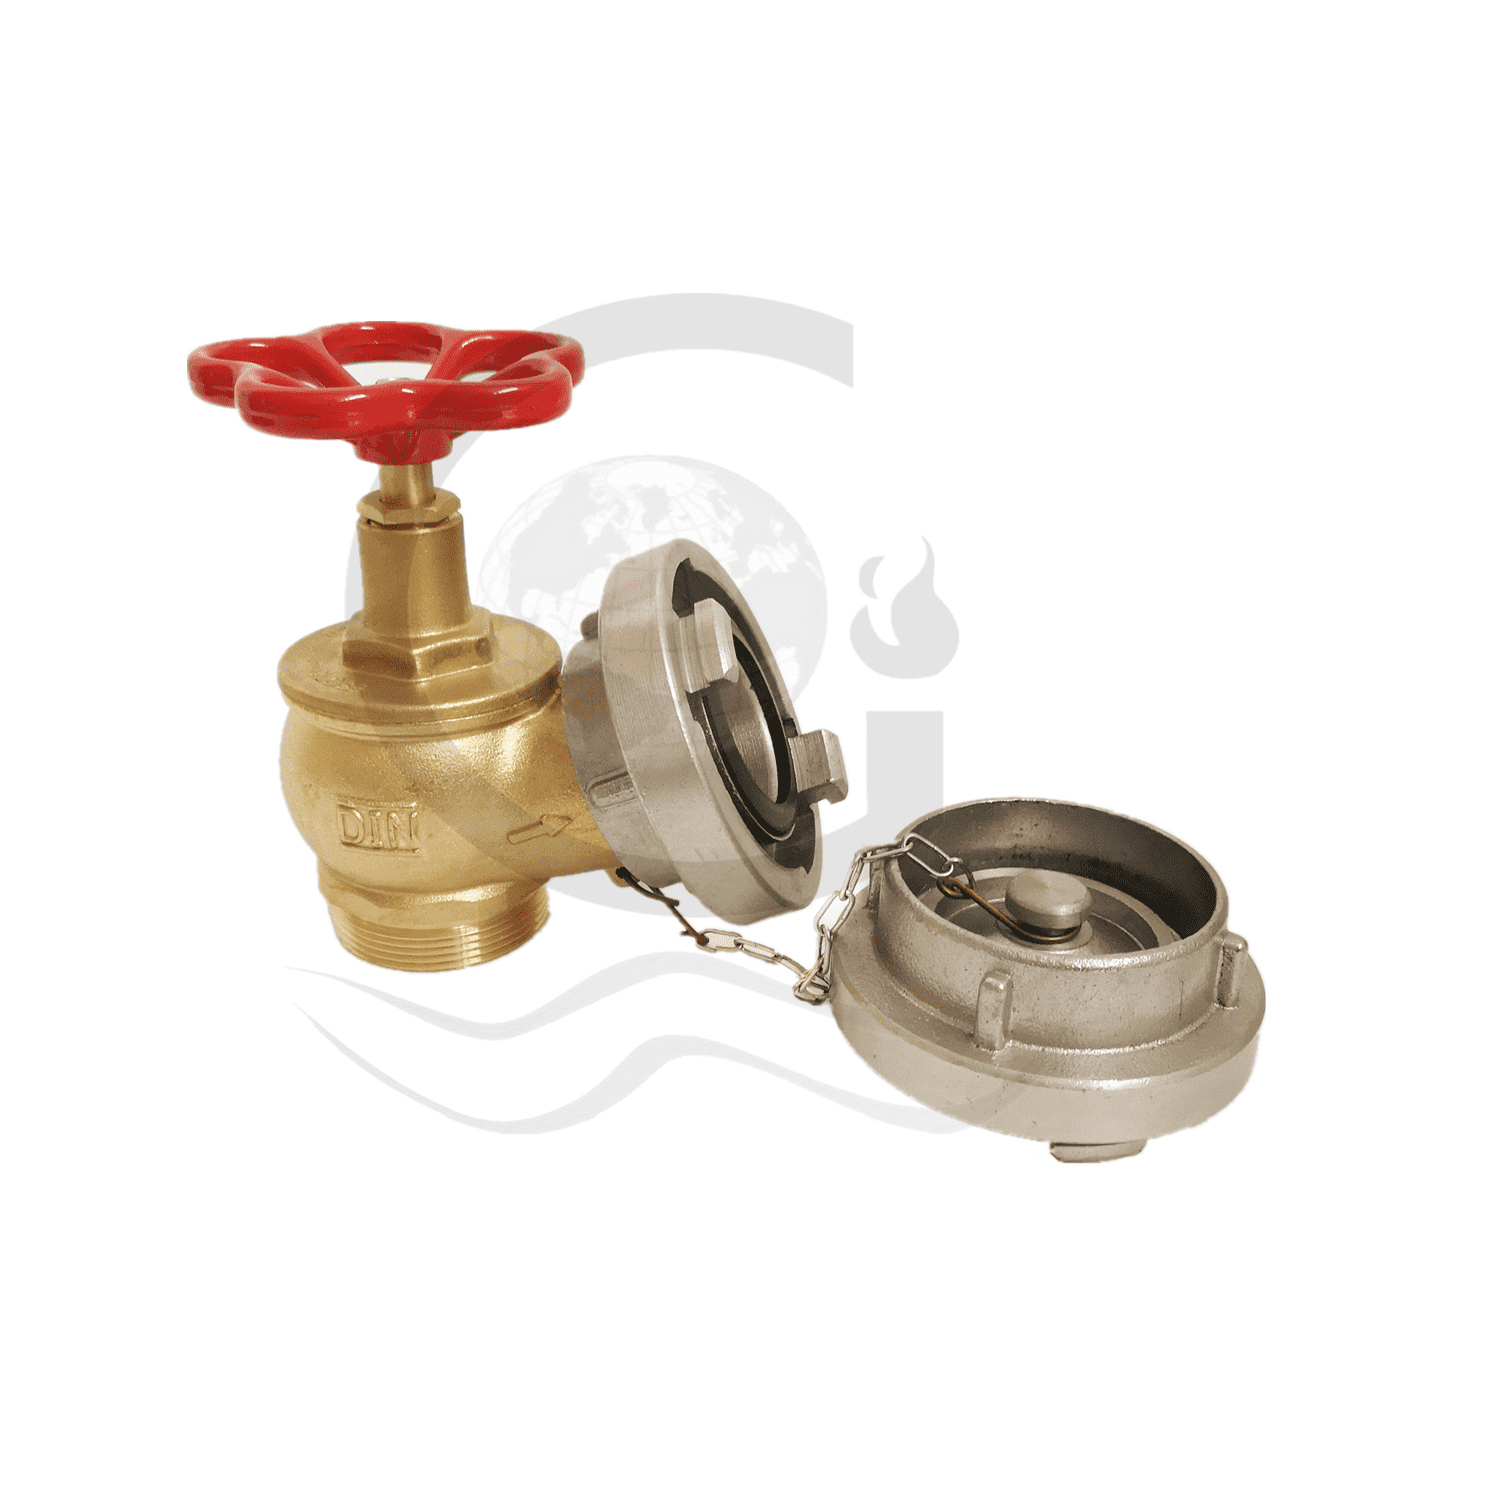 Din landing valve with storz adapter with cap Featured Image